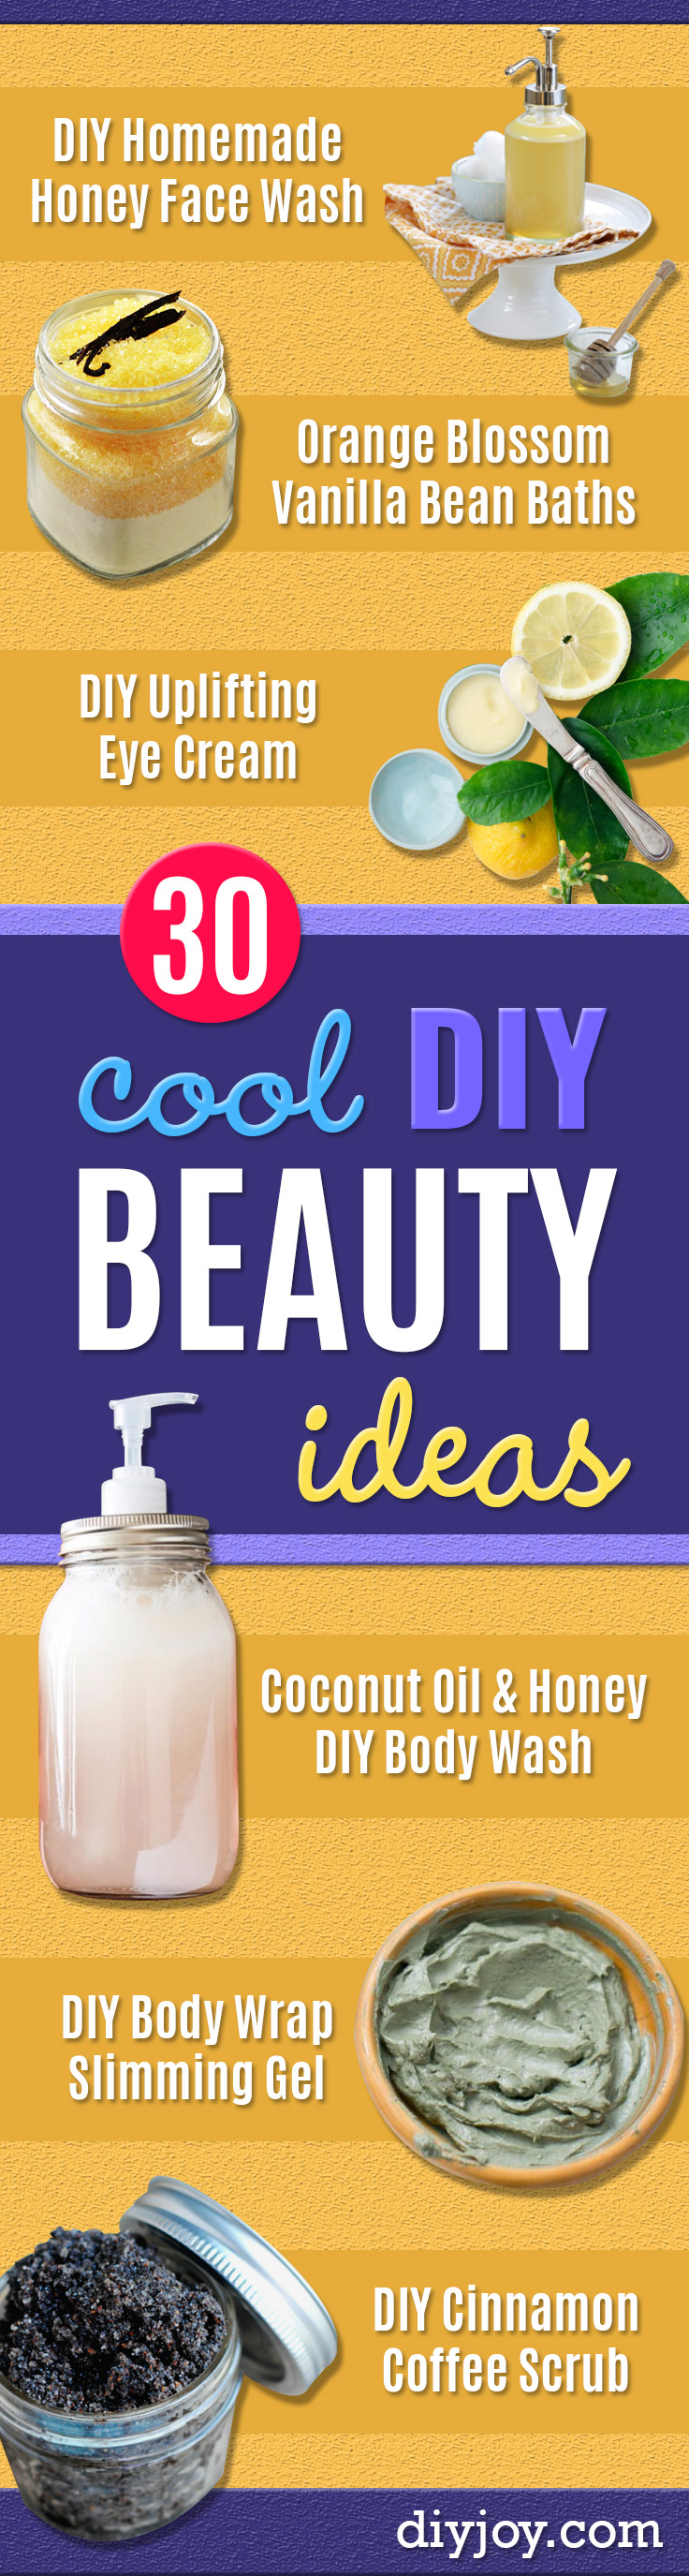 DIY Beauty Ideas and Recipes for Products You Can Make At Home -Easy Tutorials and Recipe Ideas for Face, Skin, Hair, Makeup, Lips - 3 Ingredient, Coconut Oil, Cheap Knock Offs, Baking Soda and Natural Product - Cool Homemade Gifts for Teens and Women